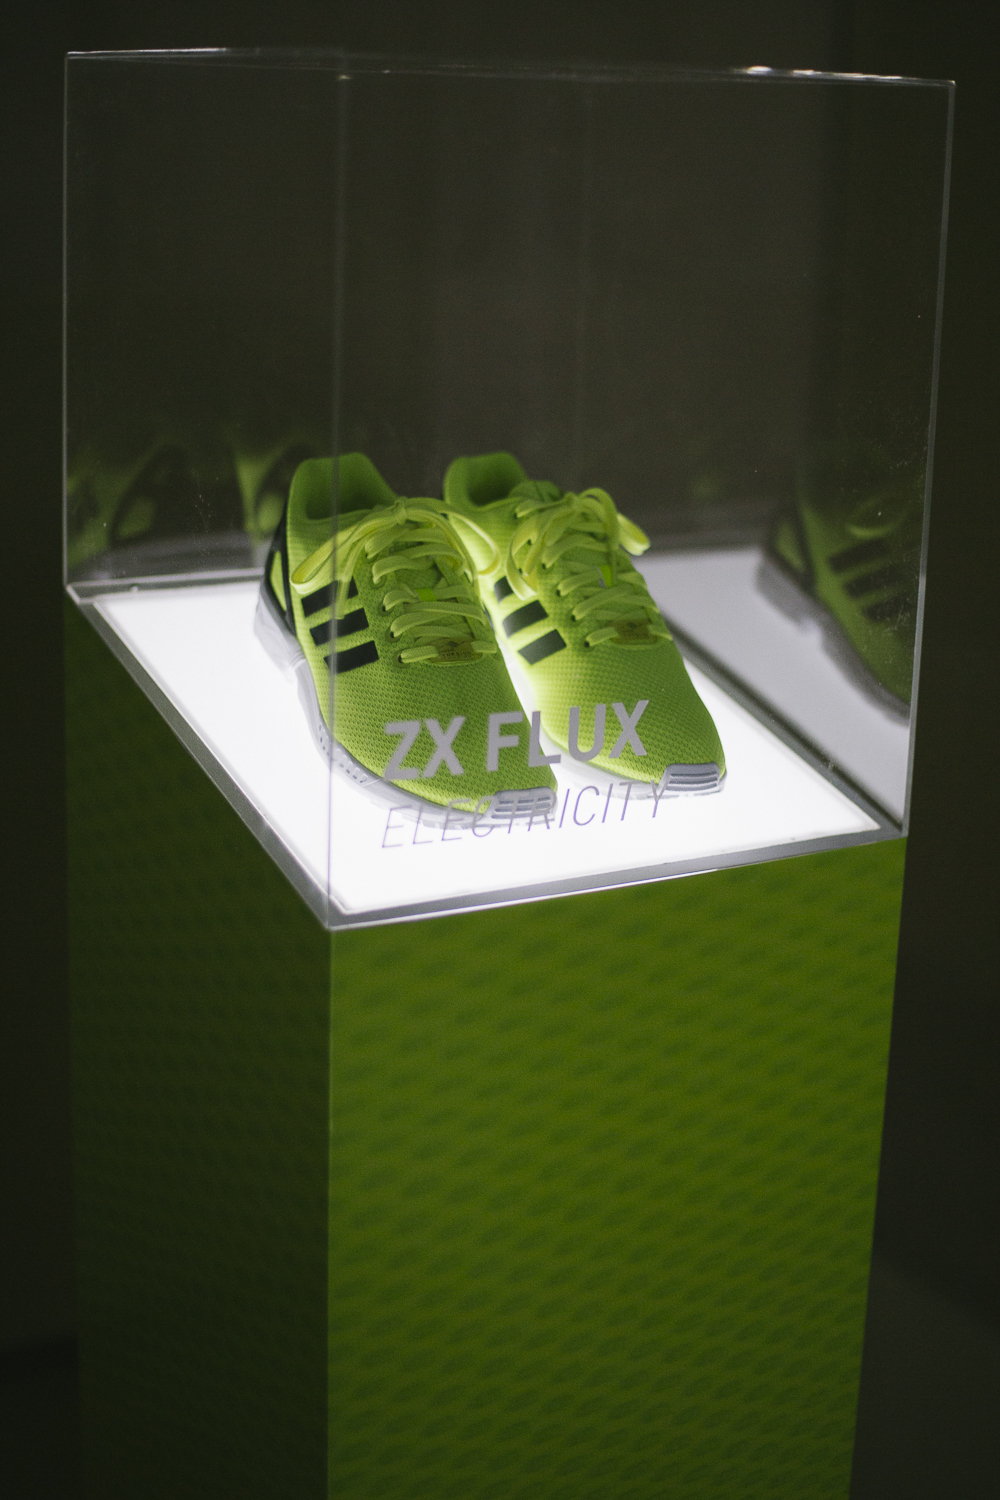 04_Adidas-ZX FLUX-Electricity_ANDPEOPLE_KimTerriSmith.jpg